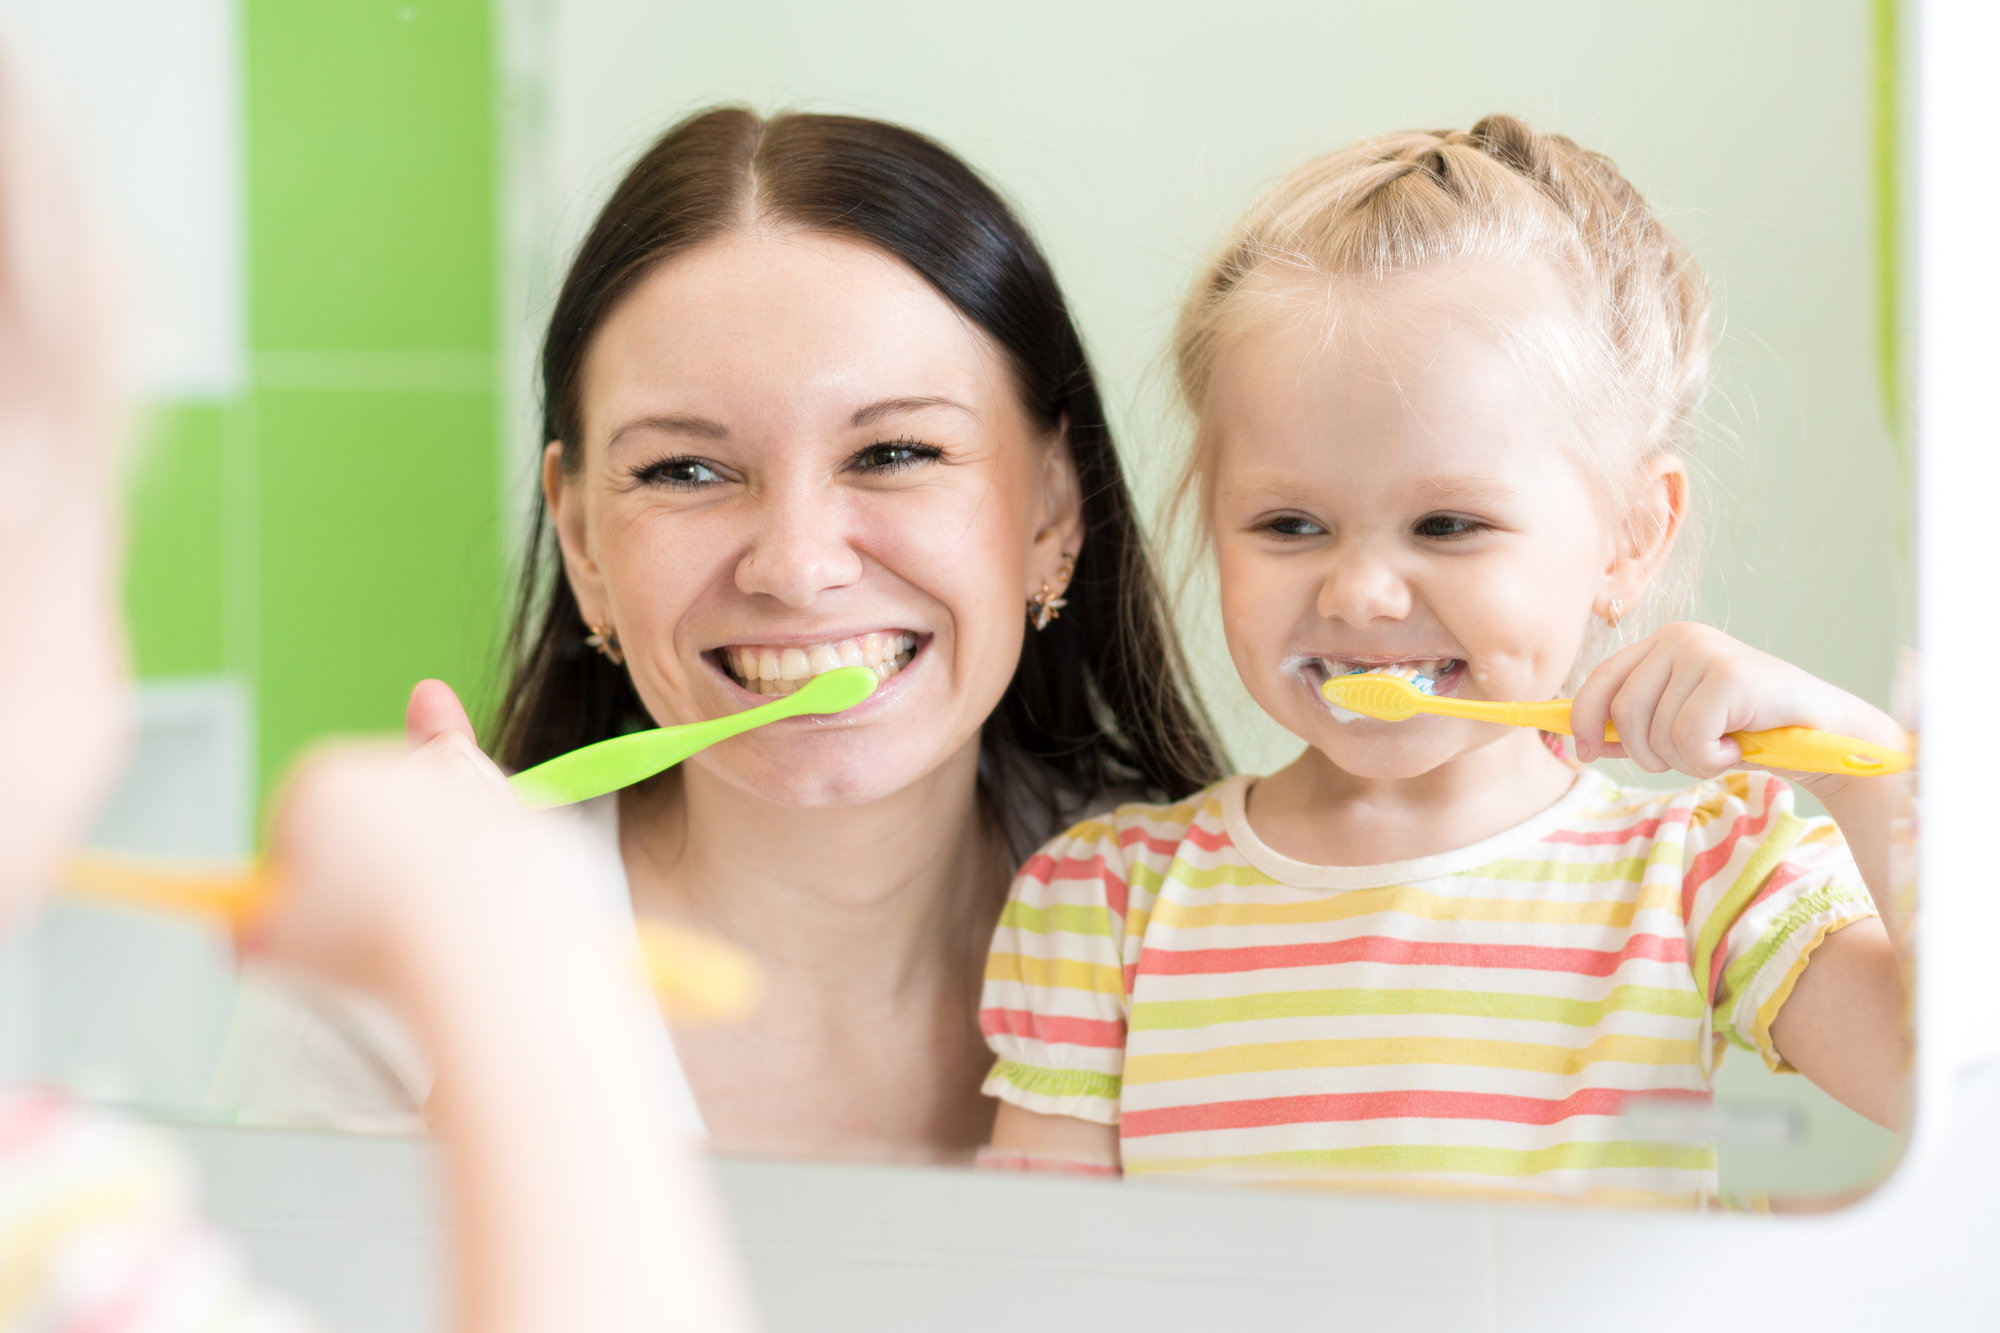 Who offers the best pediatric dentistry in North Palm Beach?